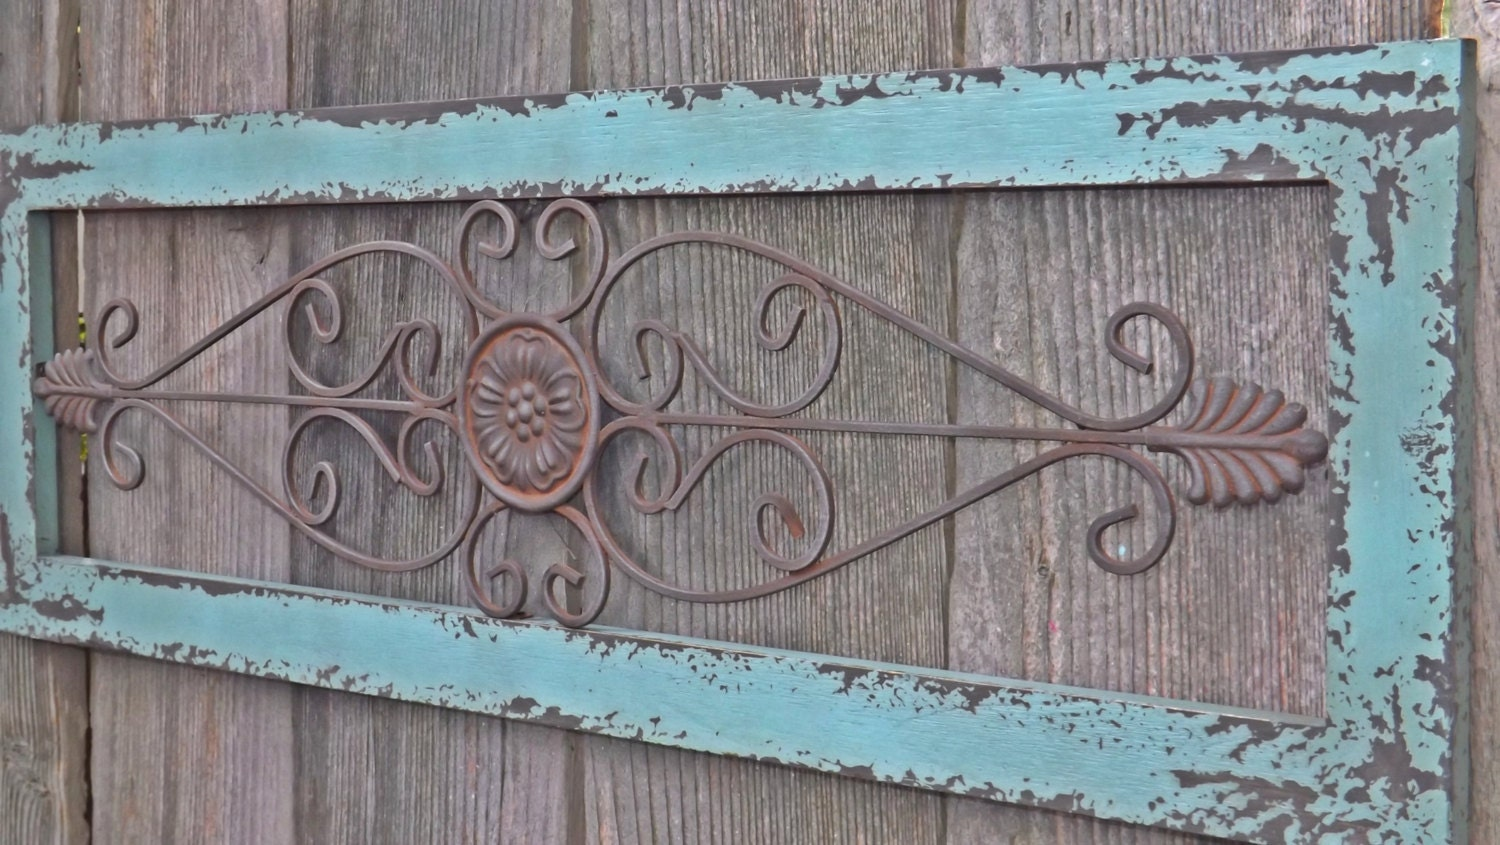 Wrought Iron Wall Decor With Wood Frame : Customer appreciation wrought iron ornate by theshabbyshak